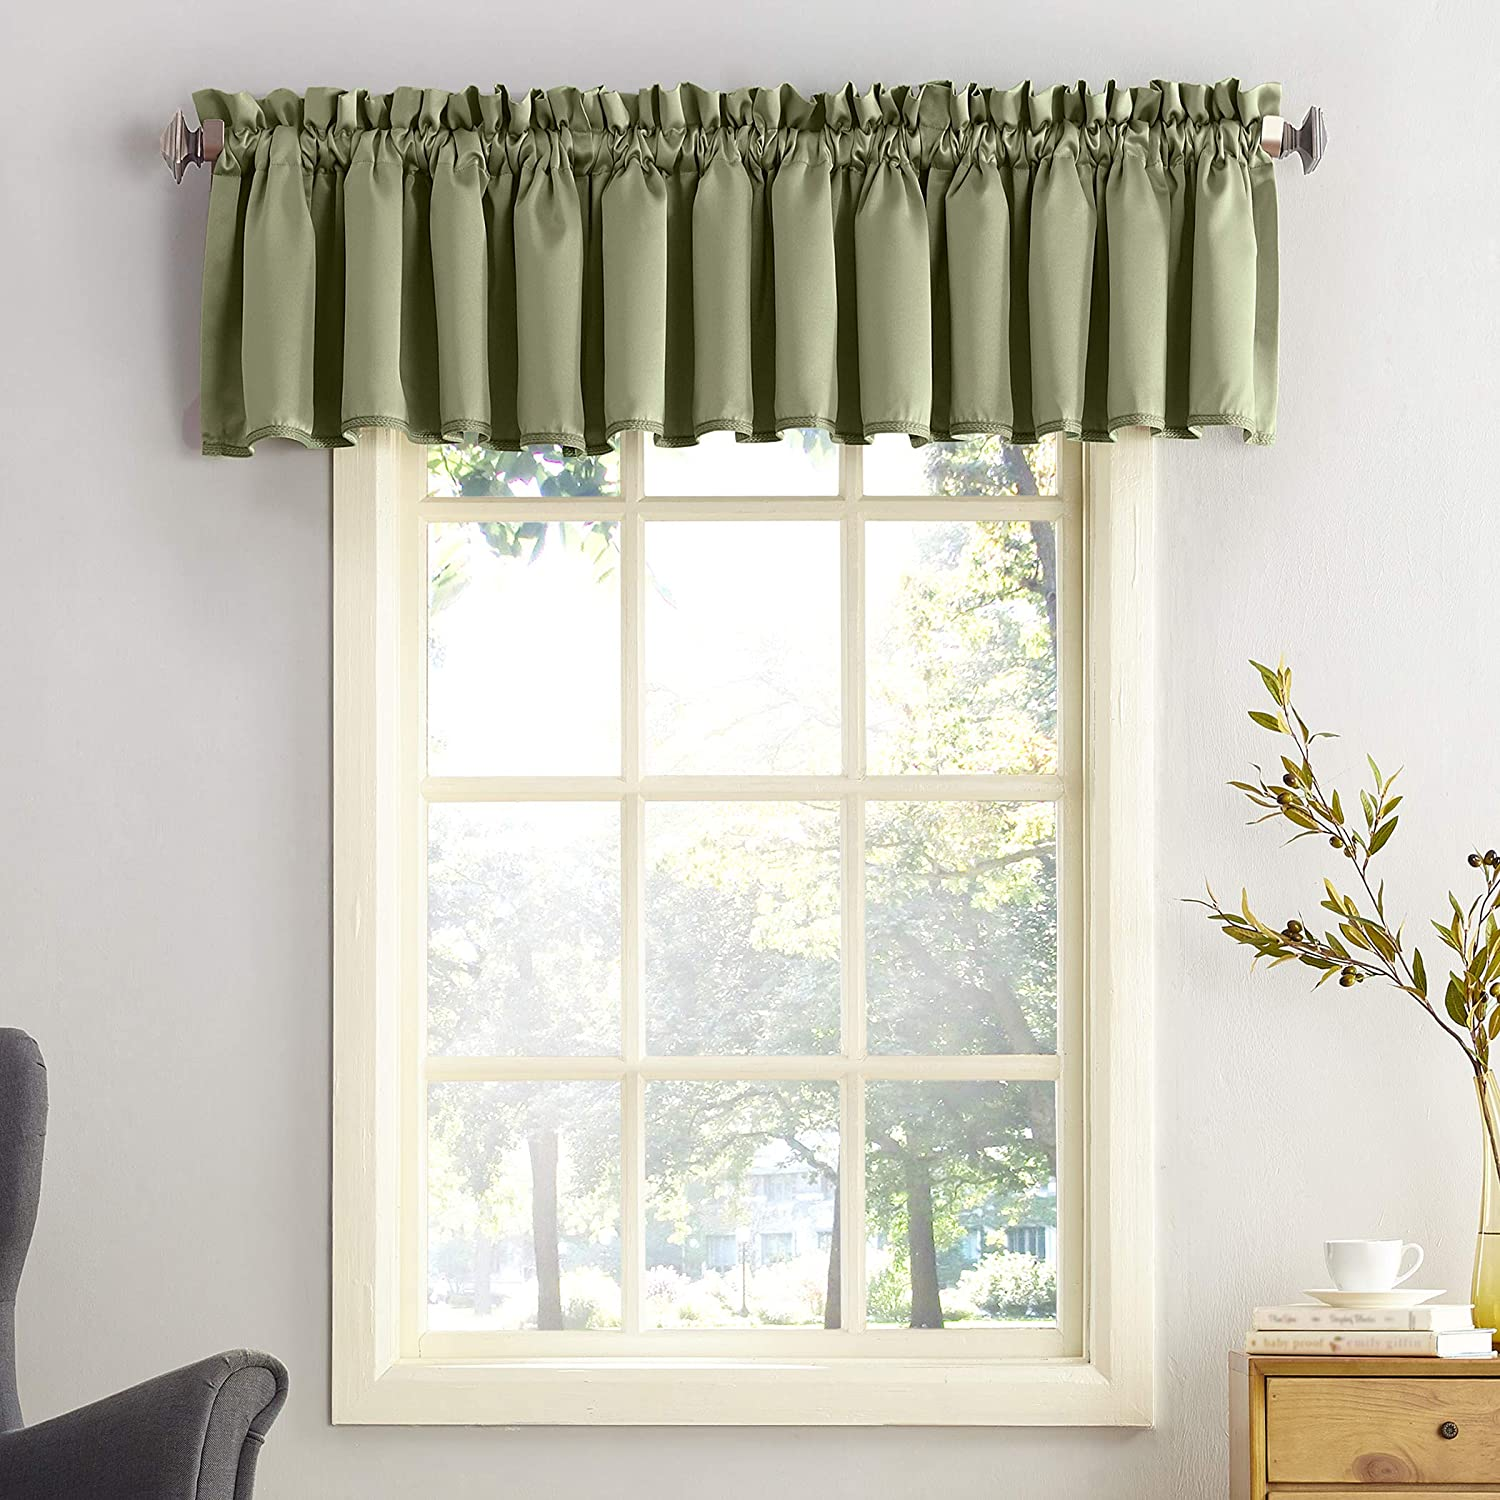 "Sun Zero Barrow Energy Efficient Rod Pocket Curtain Valance, 54"" x 18"", Sage Green"